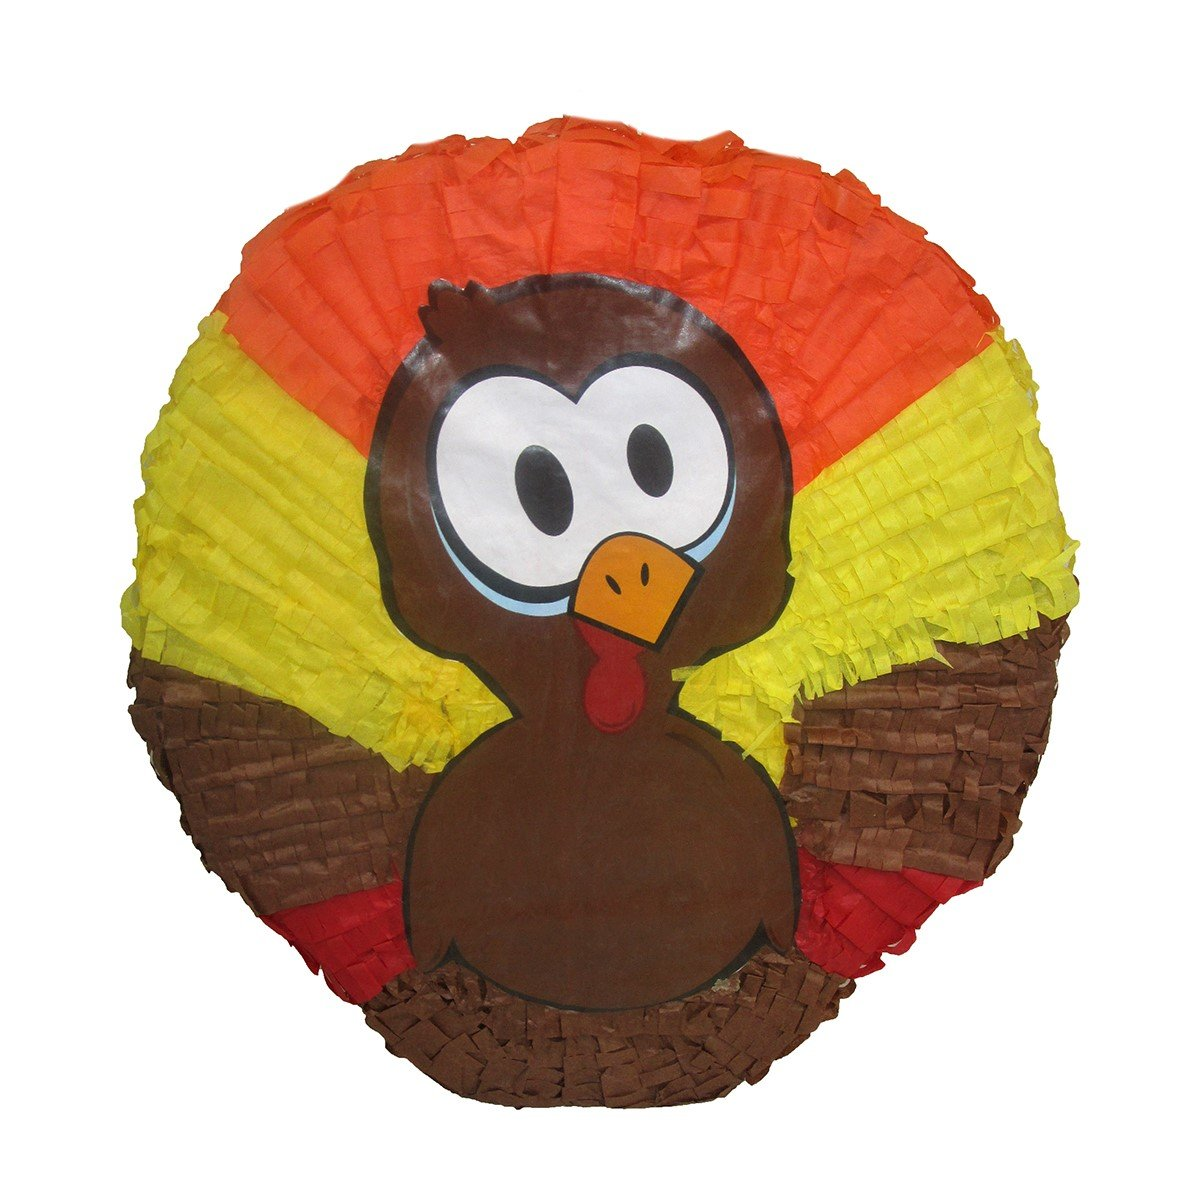 Pinatas Thanksgiving Turkey, Party Game, Centerpiece Decoration and Photo Prop by Pinatas